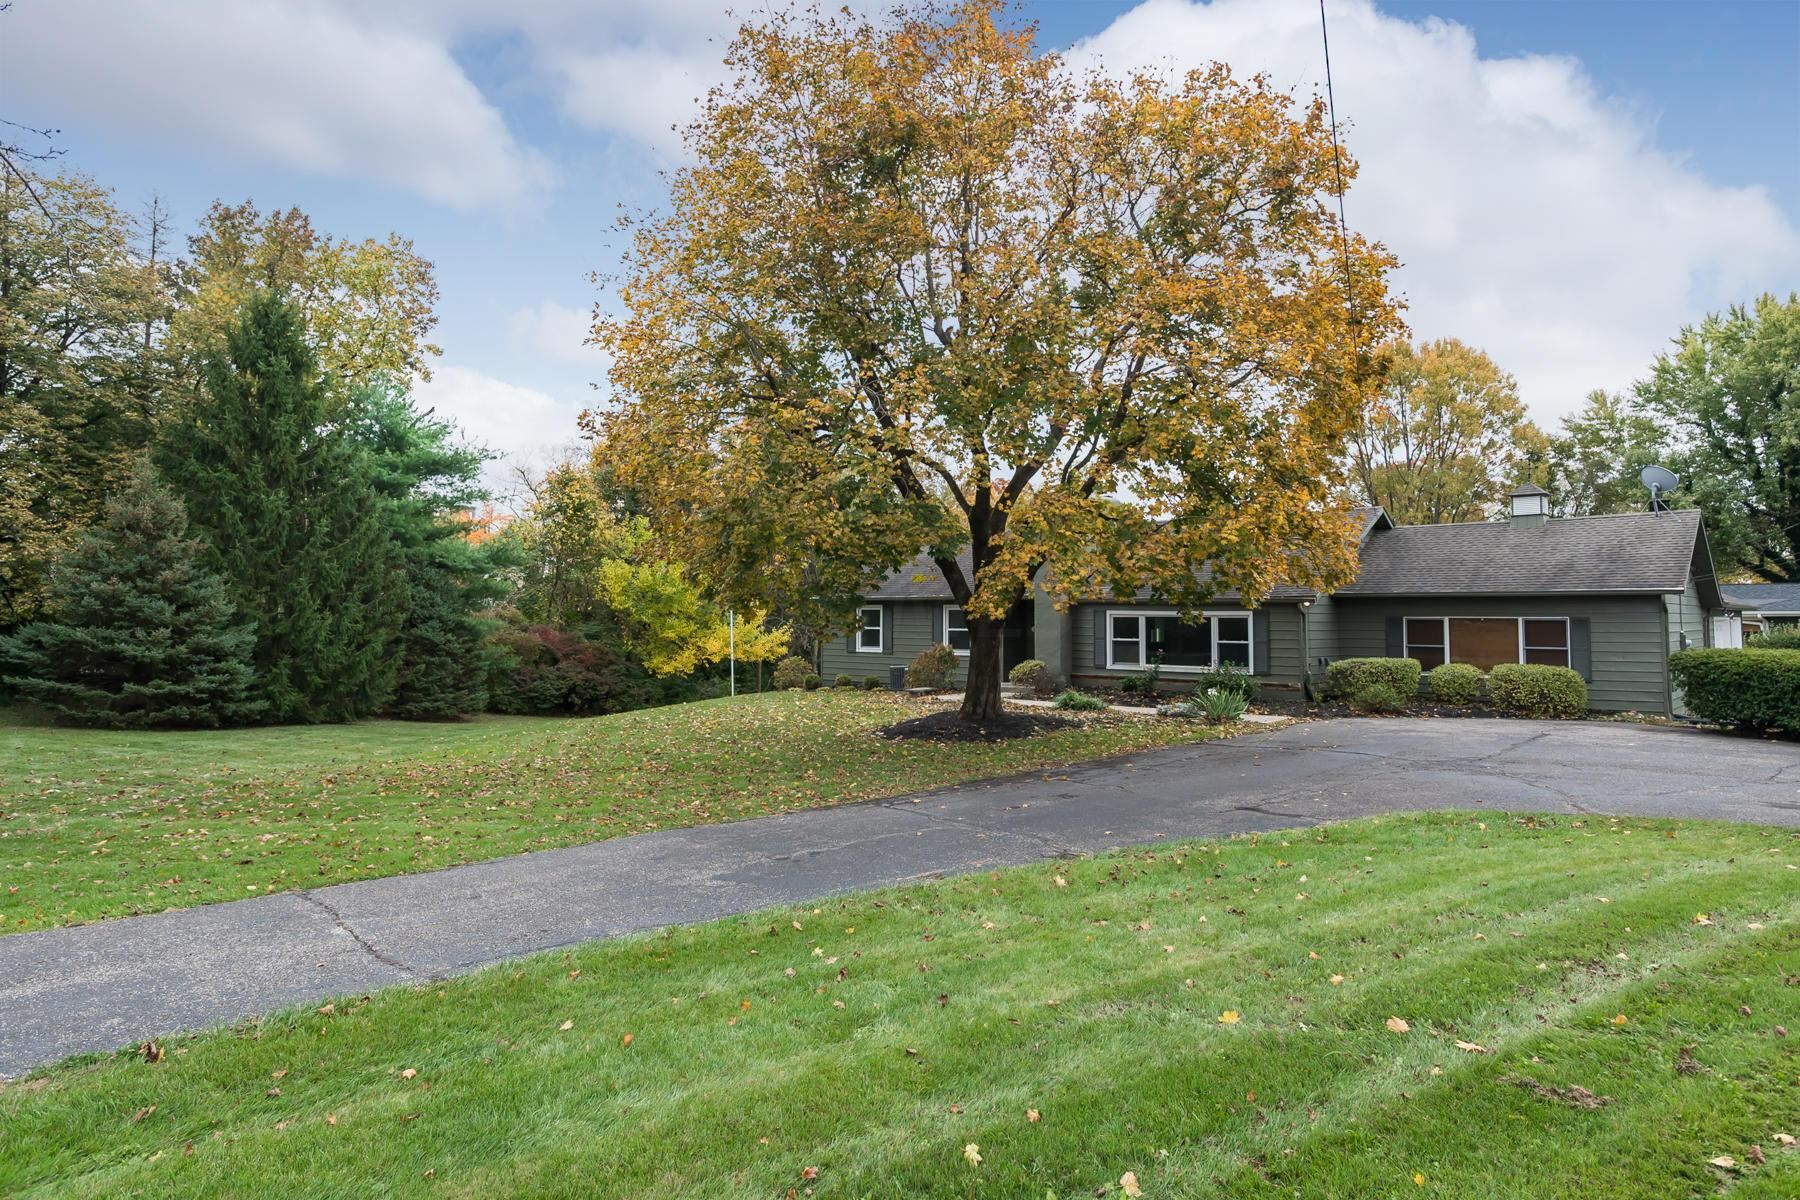 Photo of 7 Orchard Lane, Delaware, OH 43015 (MLS # 220037858)